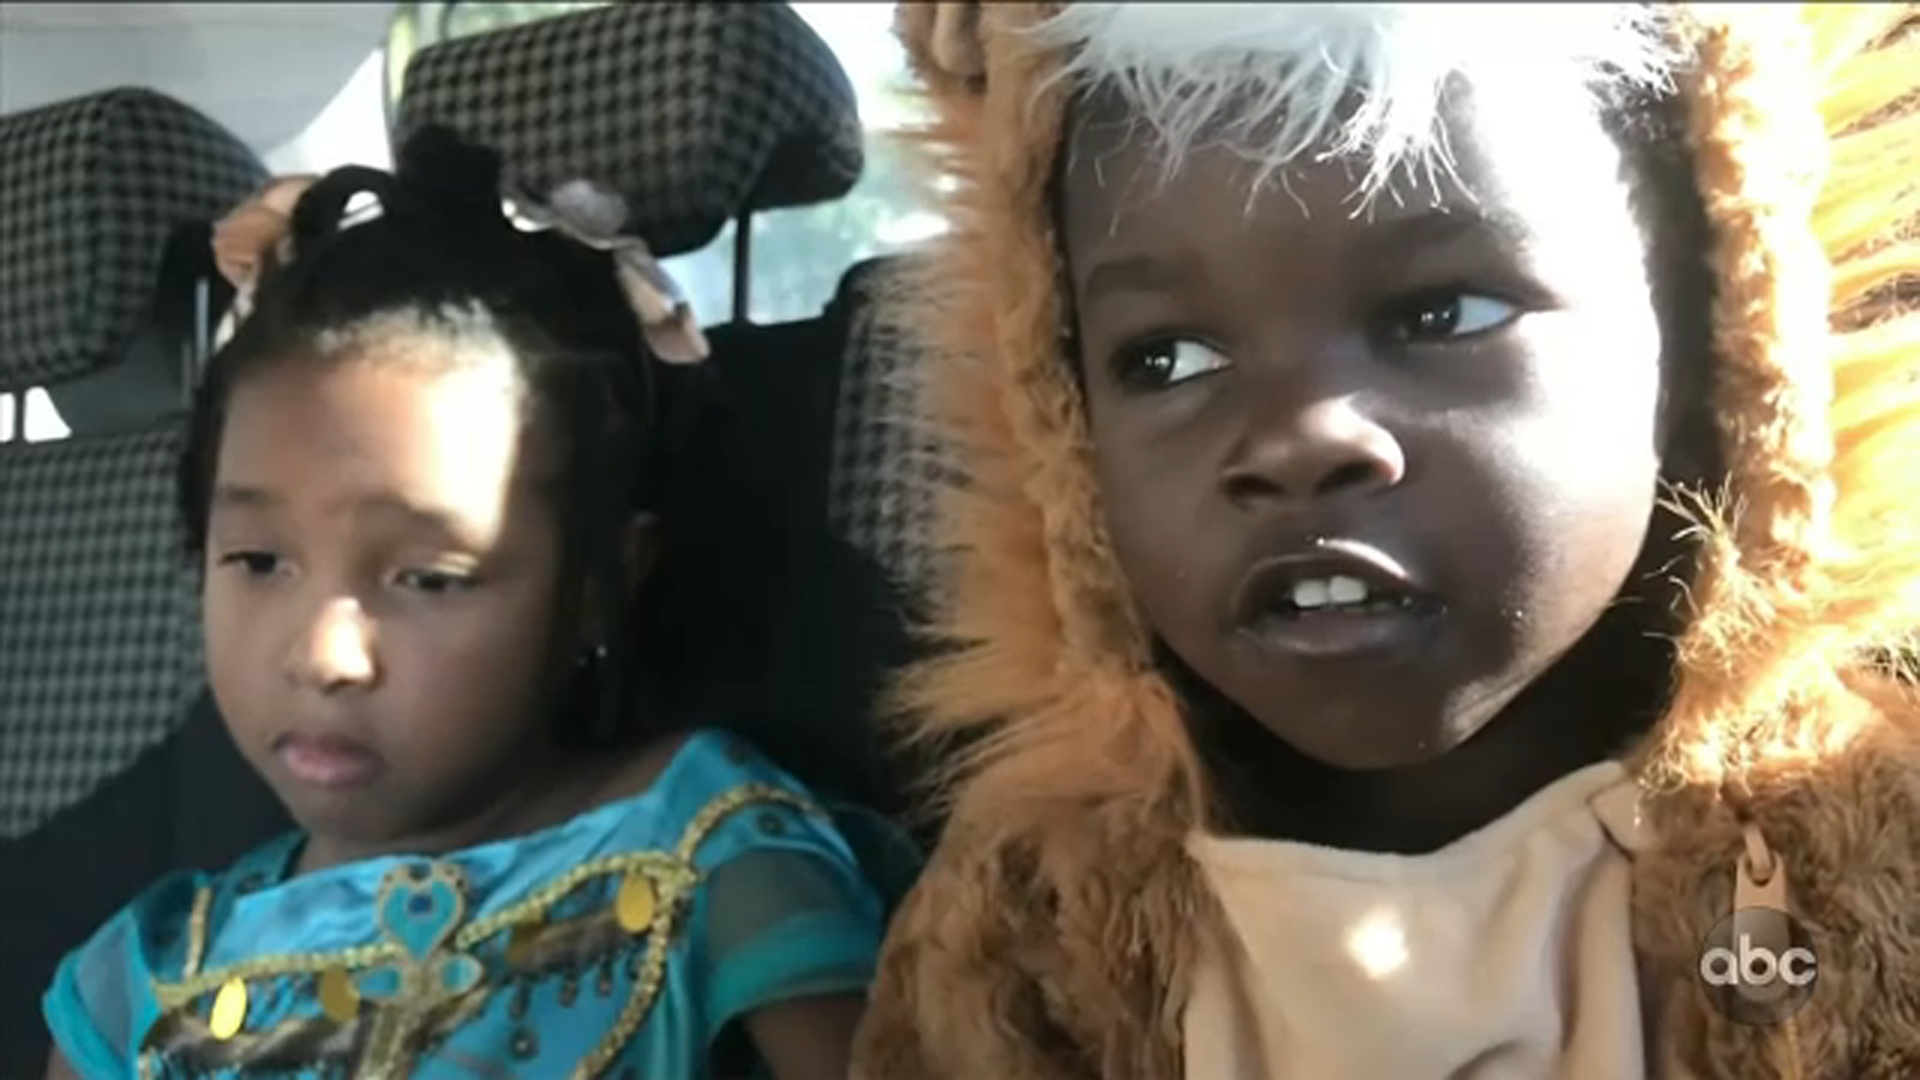 Jimmy Kimmel Halloween Candy Prank 2021.Parents Trick Kids Again In Hey Jimmy Kimmel I Told My Kids I Ate All Their Halloween Candy 2019 Abc7 Chicago